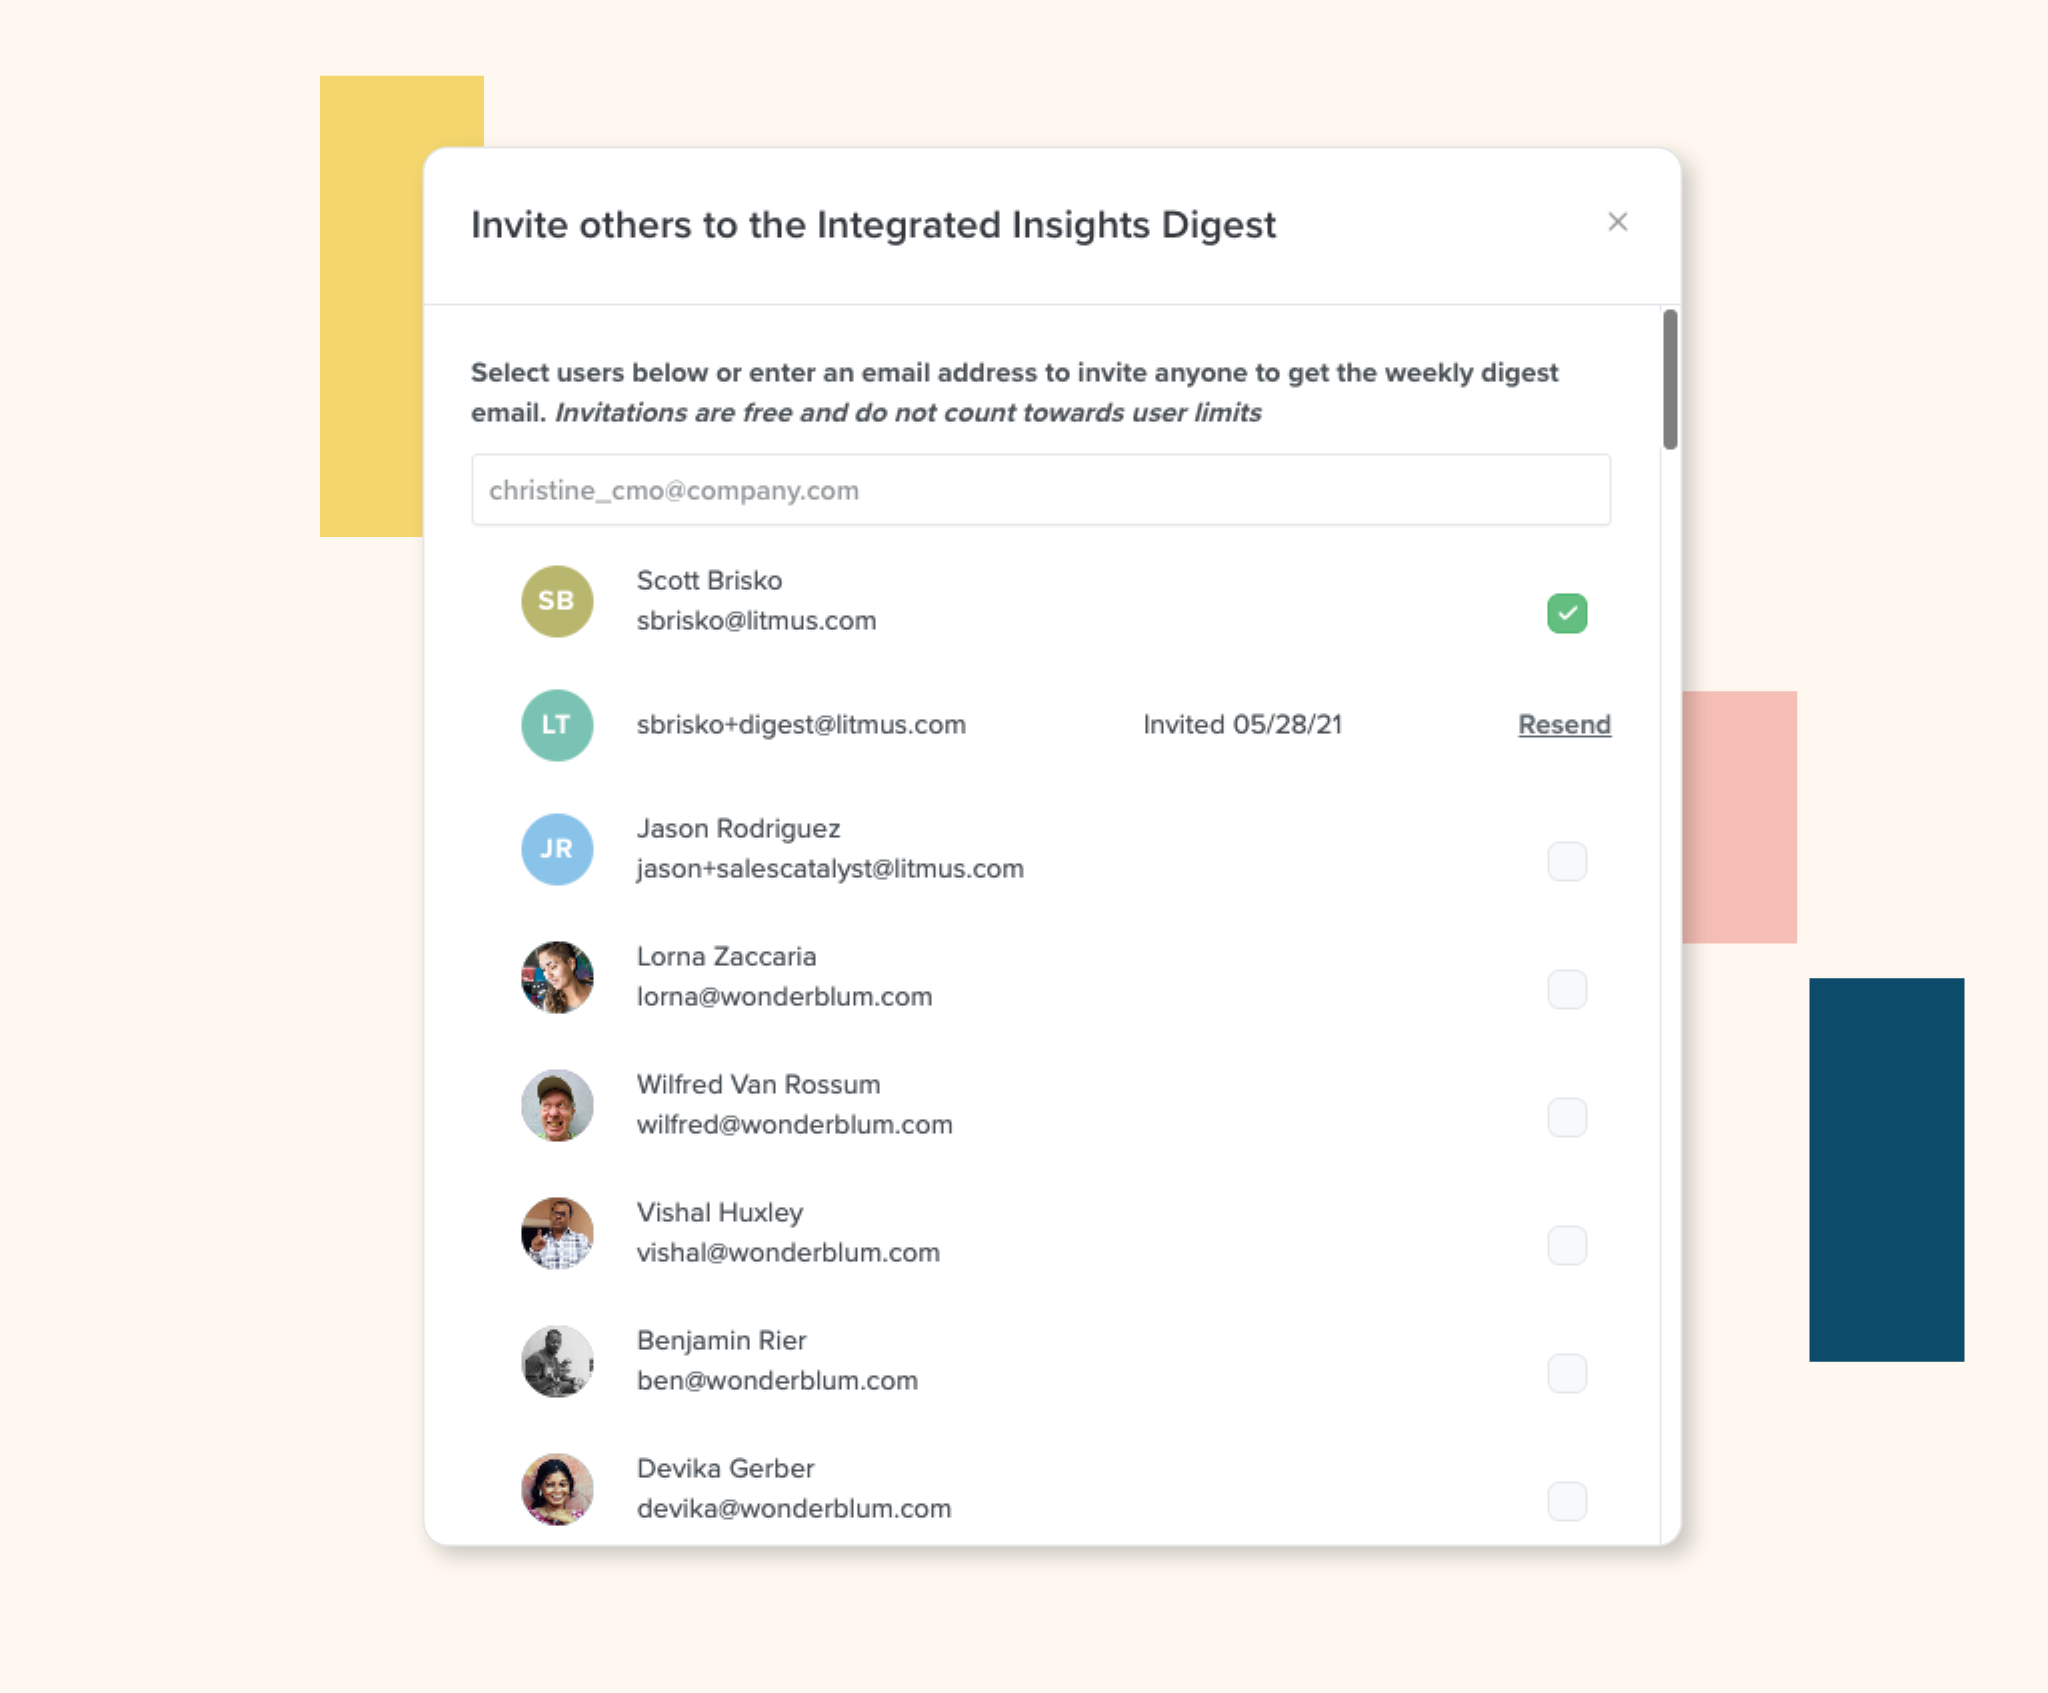 Share insights across your team